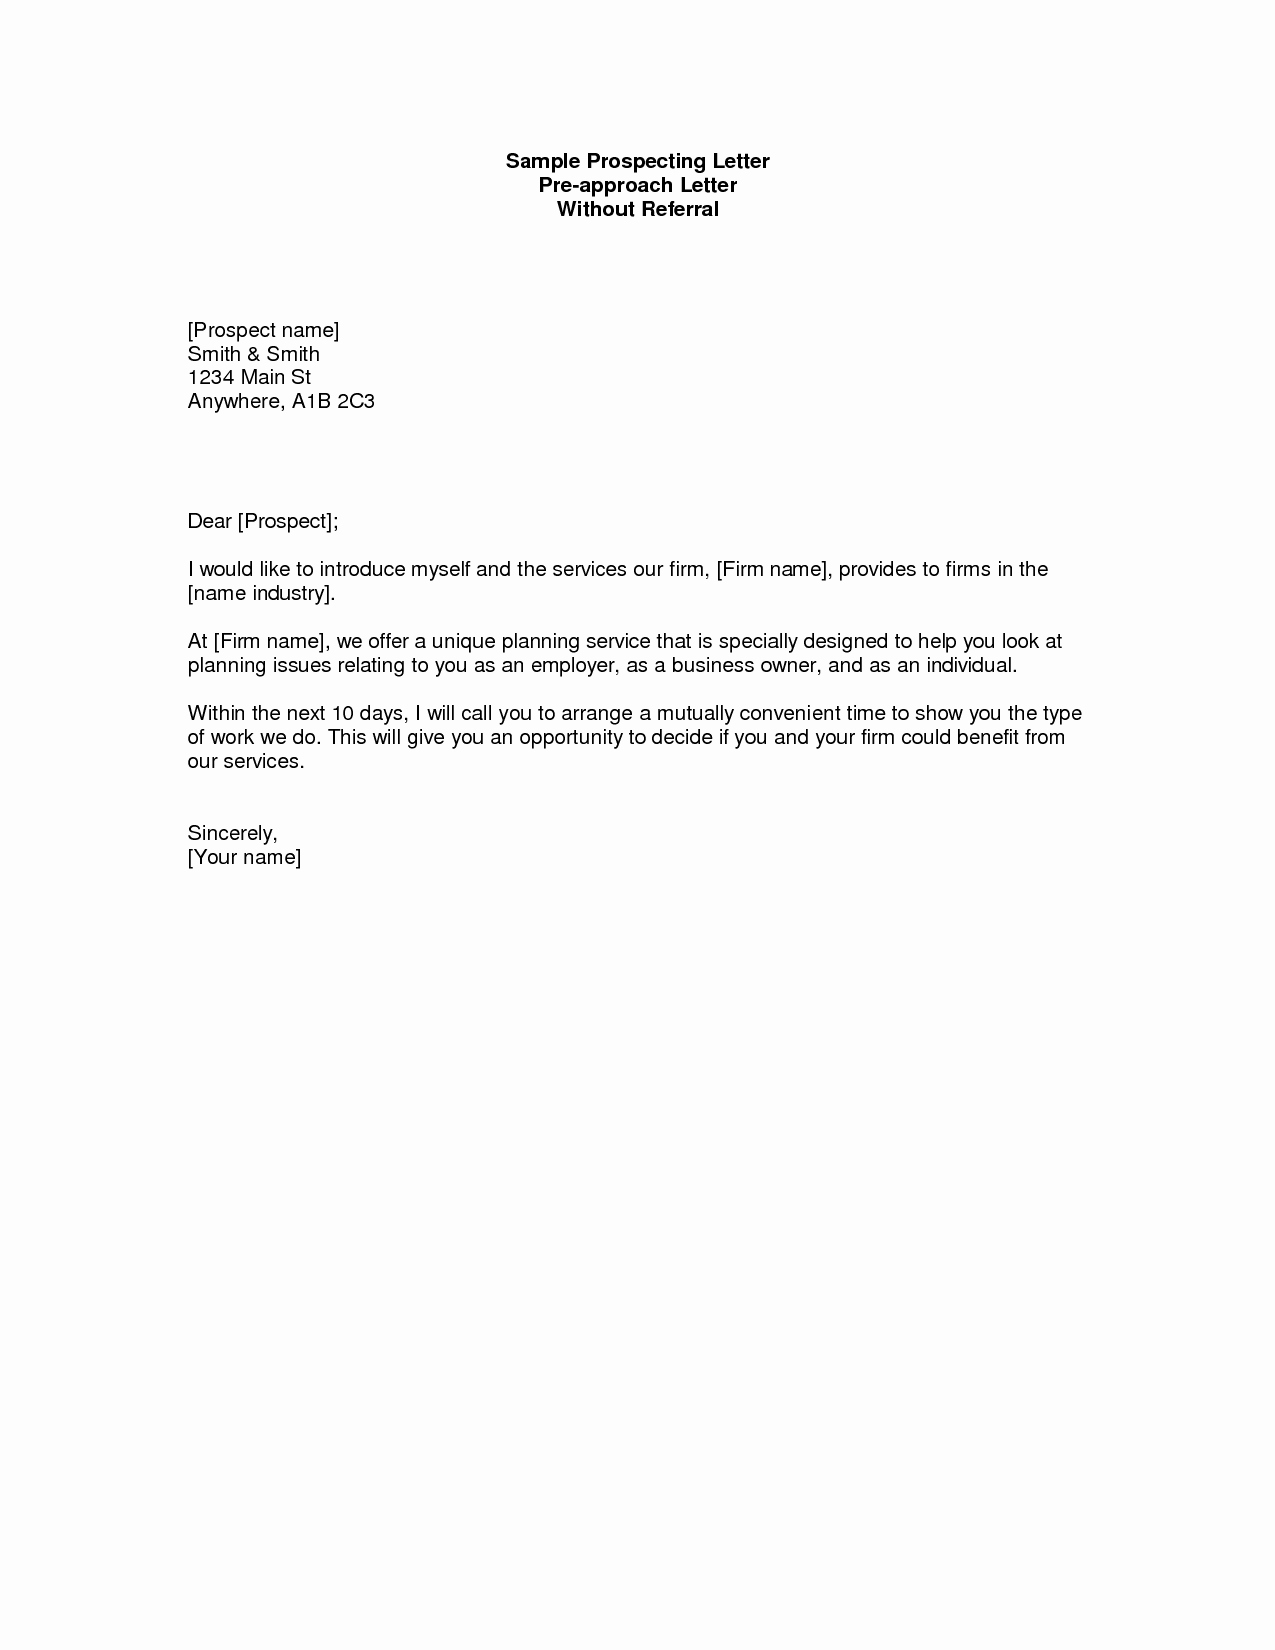 Real Estate Prospecting Letter Template - Real Estate Prospecting Letters Samples Beautiful Prospecting Letter